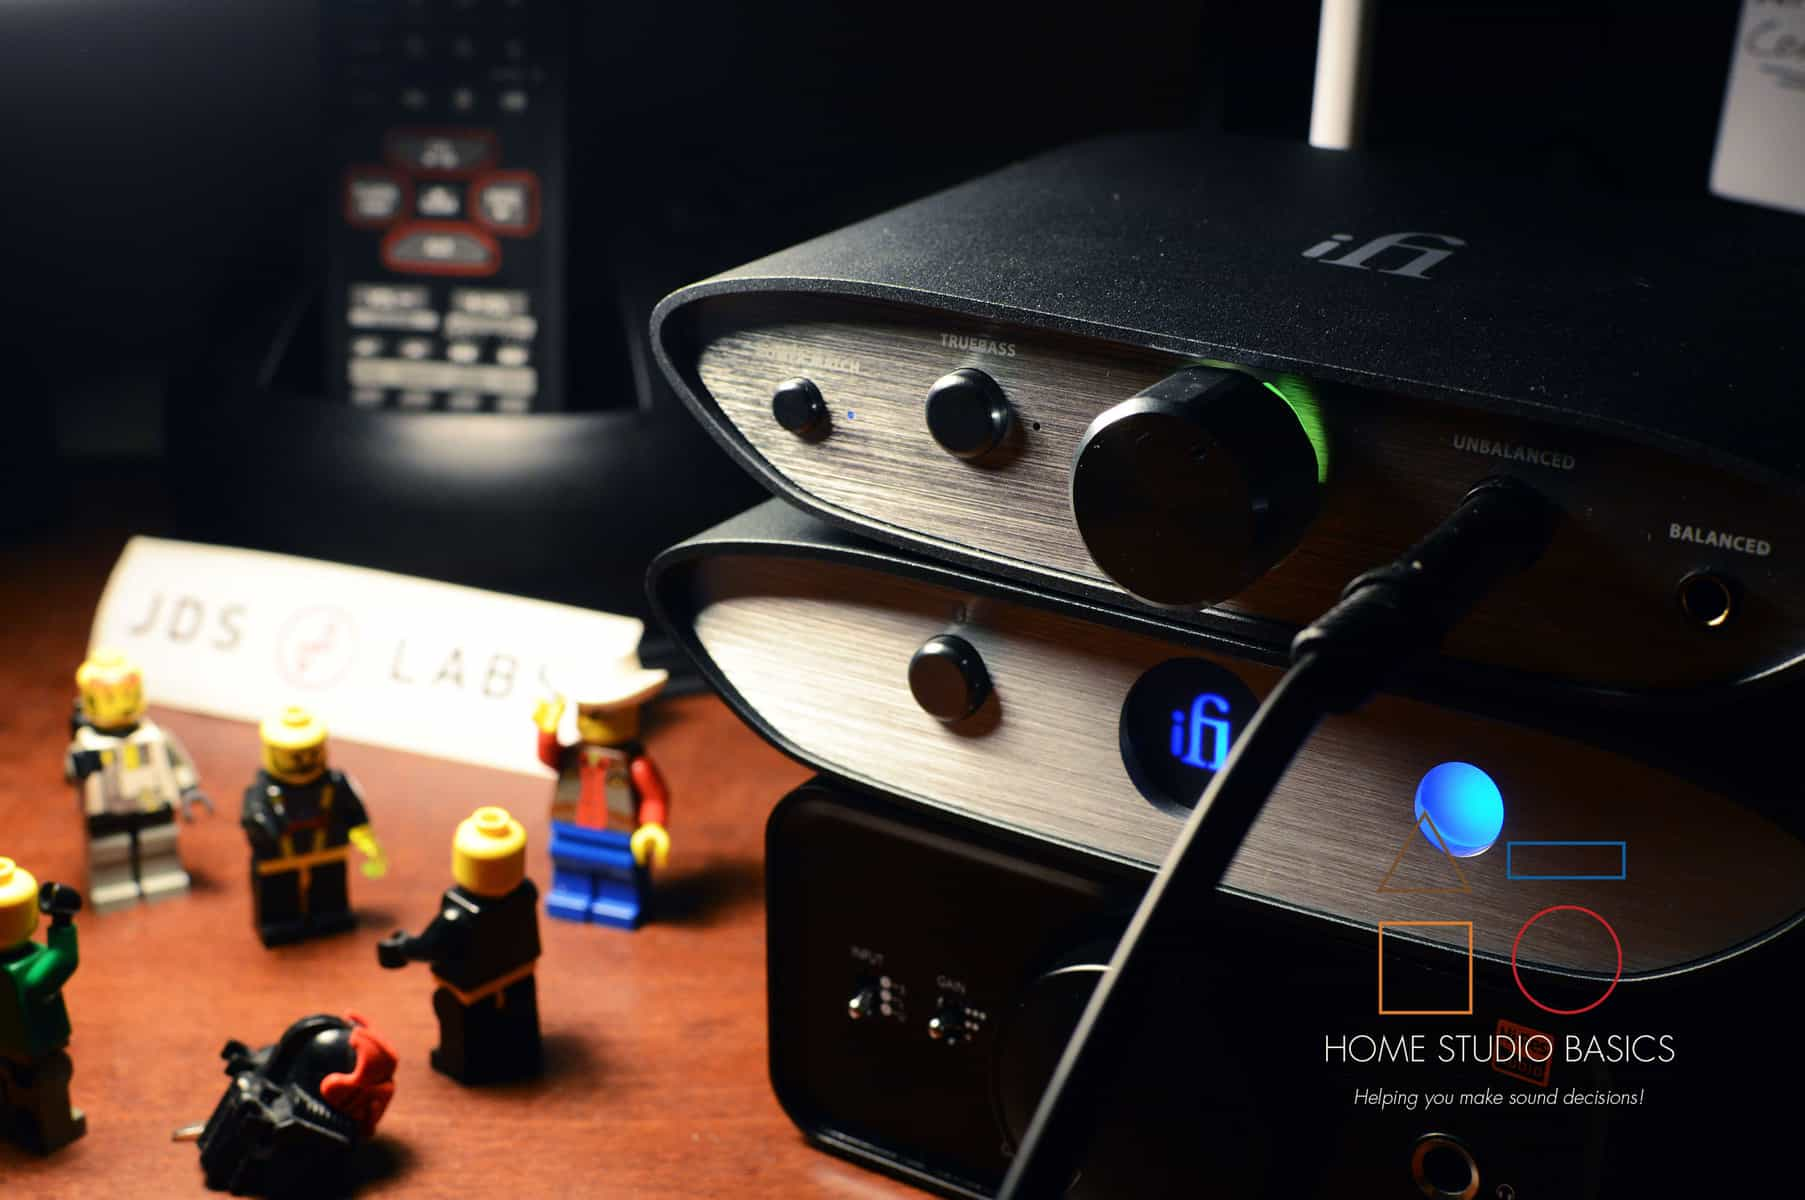 iFi's Zen DAC/Amp Review